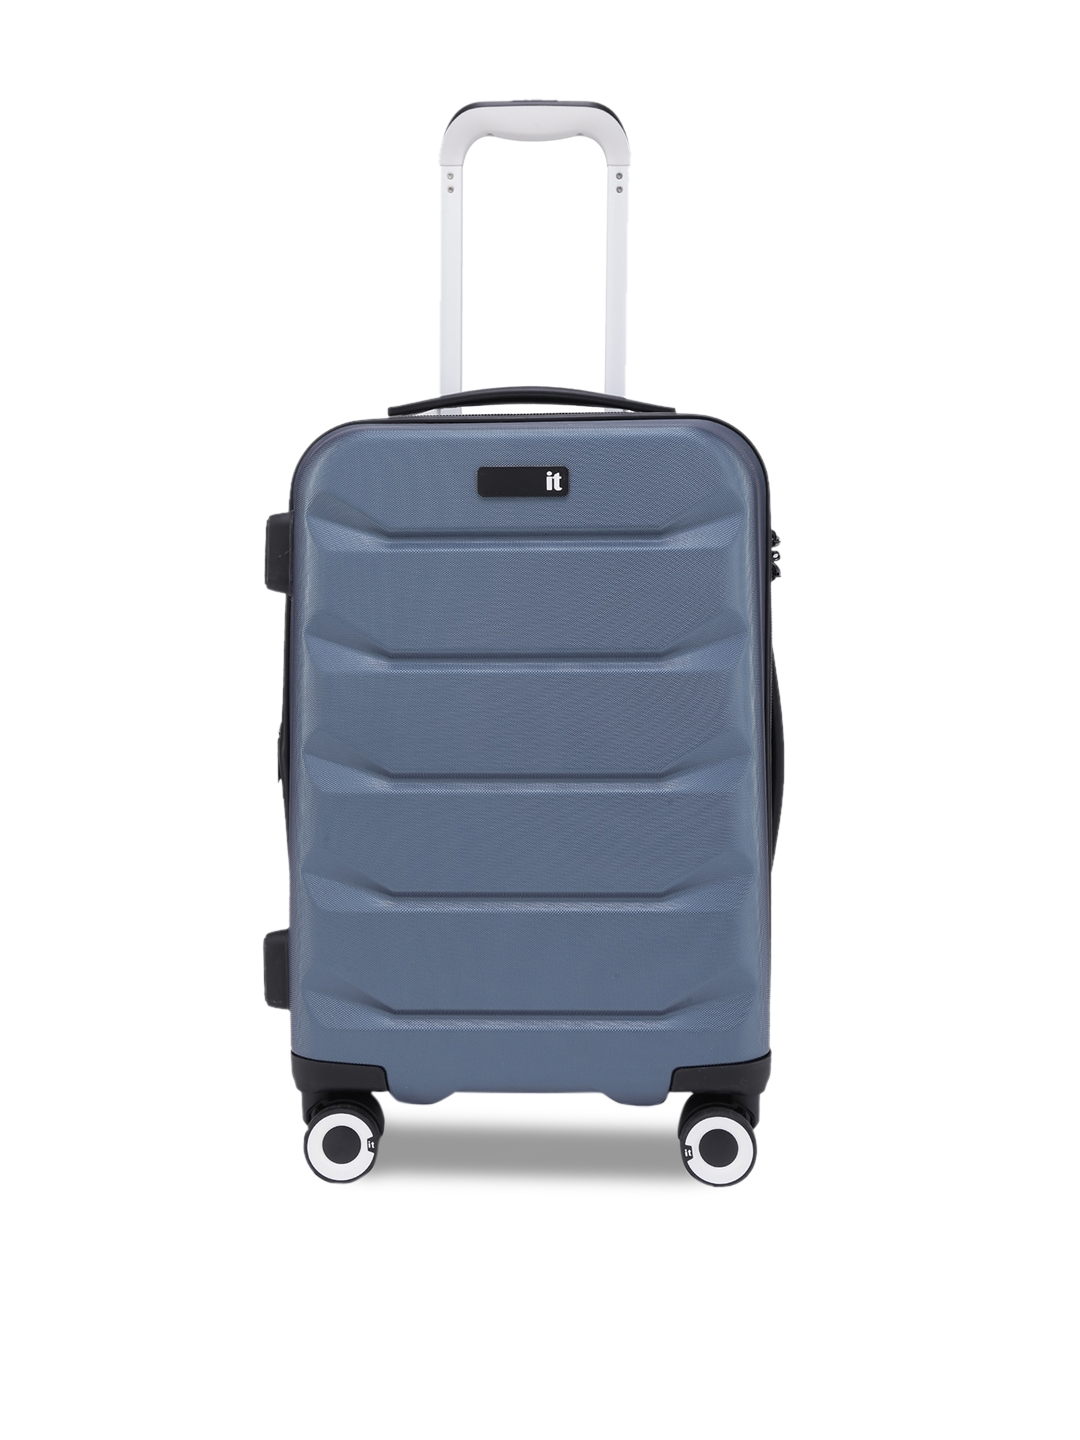 IT luggage Blue Textured Cabin Trolley Bag